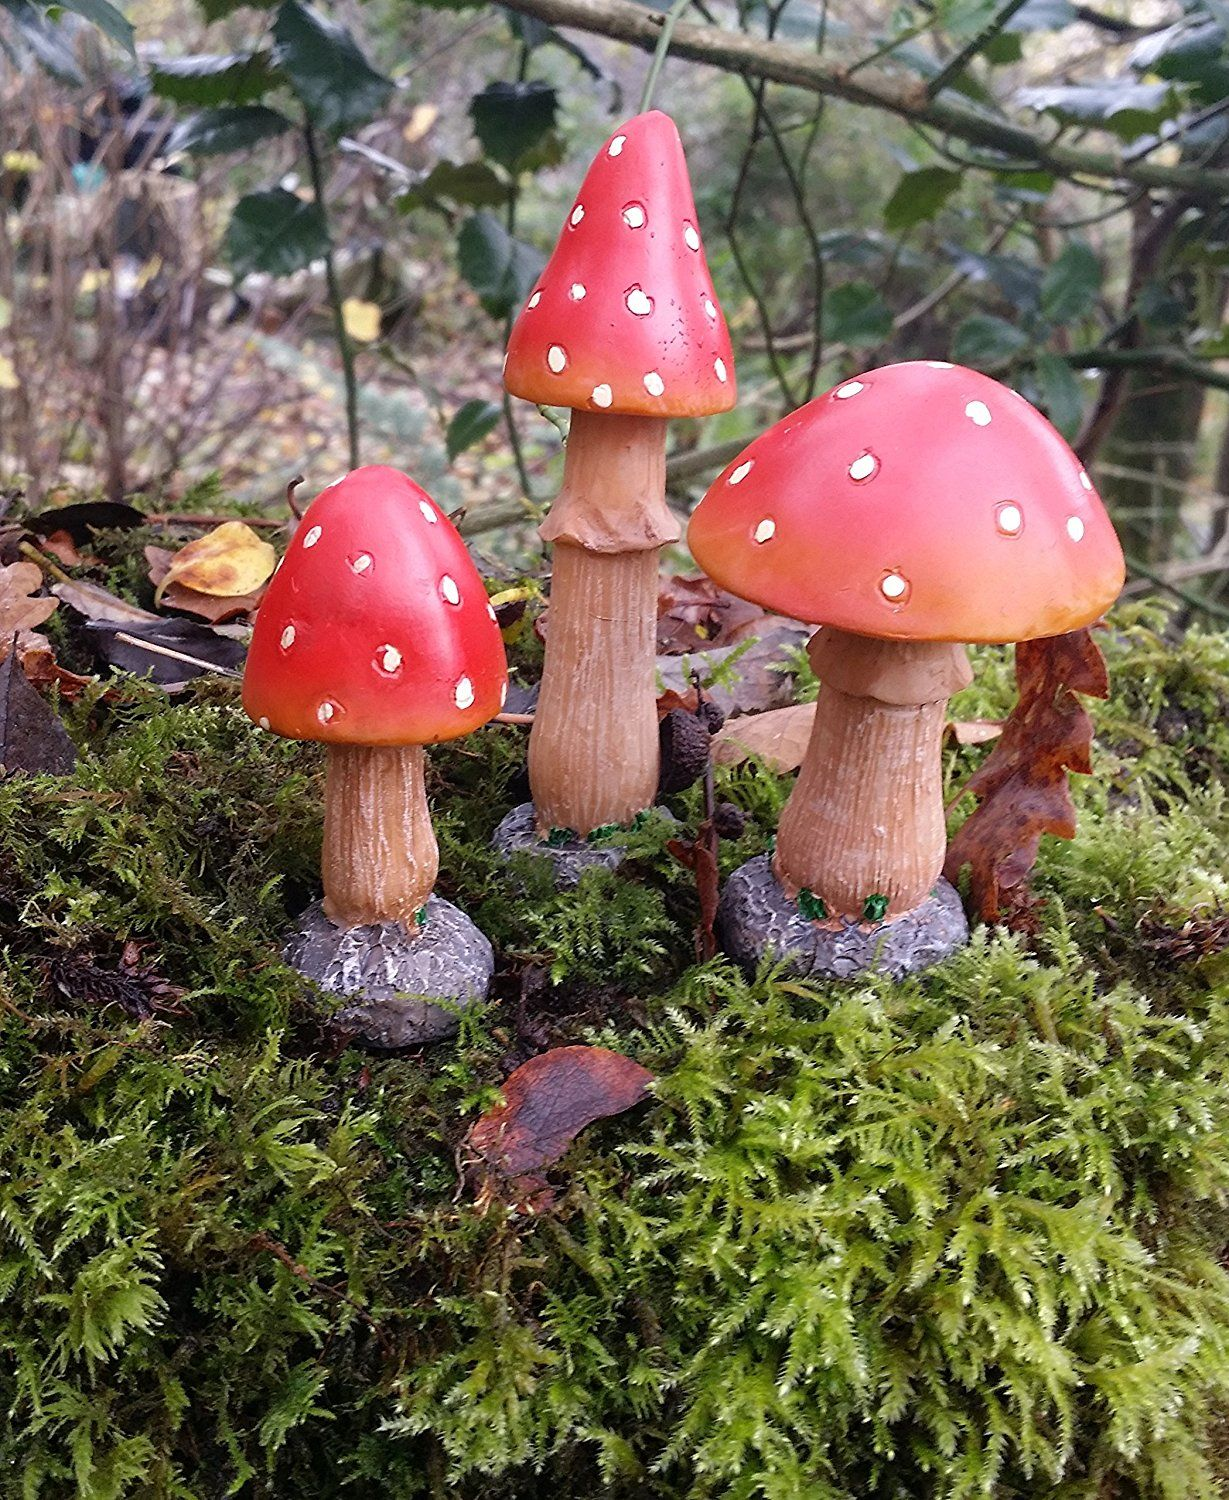 a0ec8e65e43910d0d4c30d284a47d73c - How To Get Rid Of Toadstools In Your Lawn